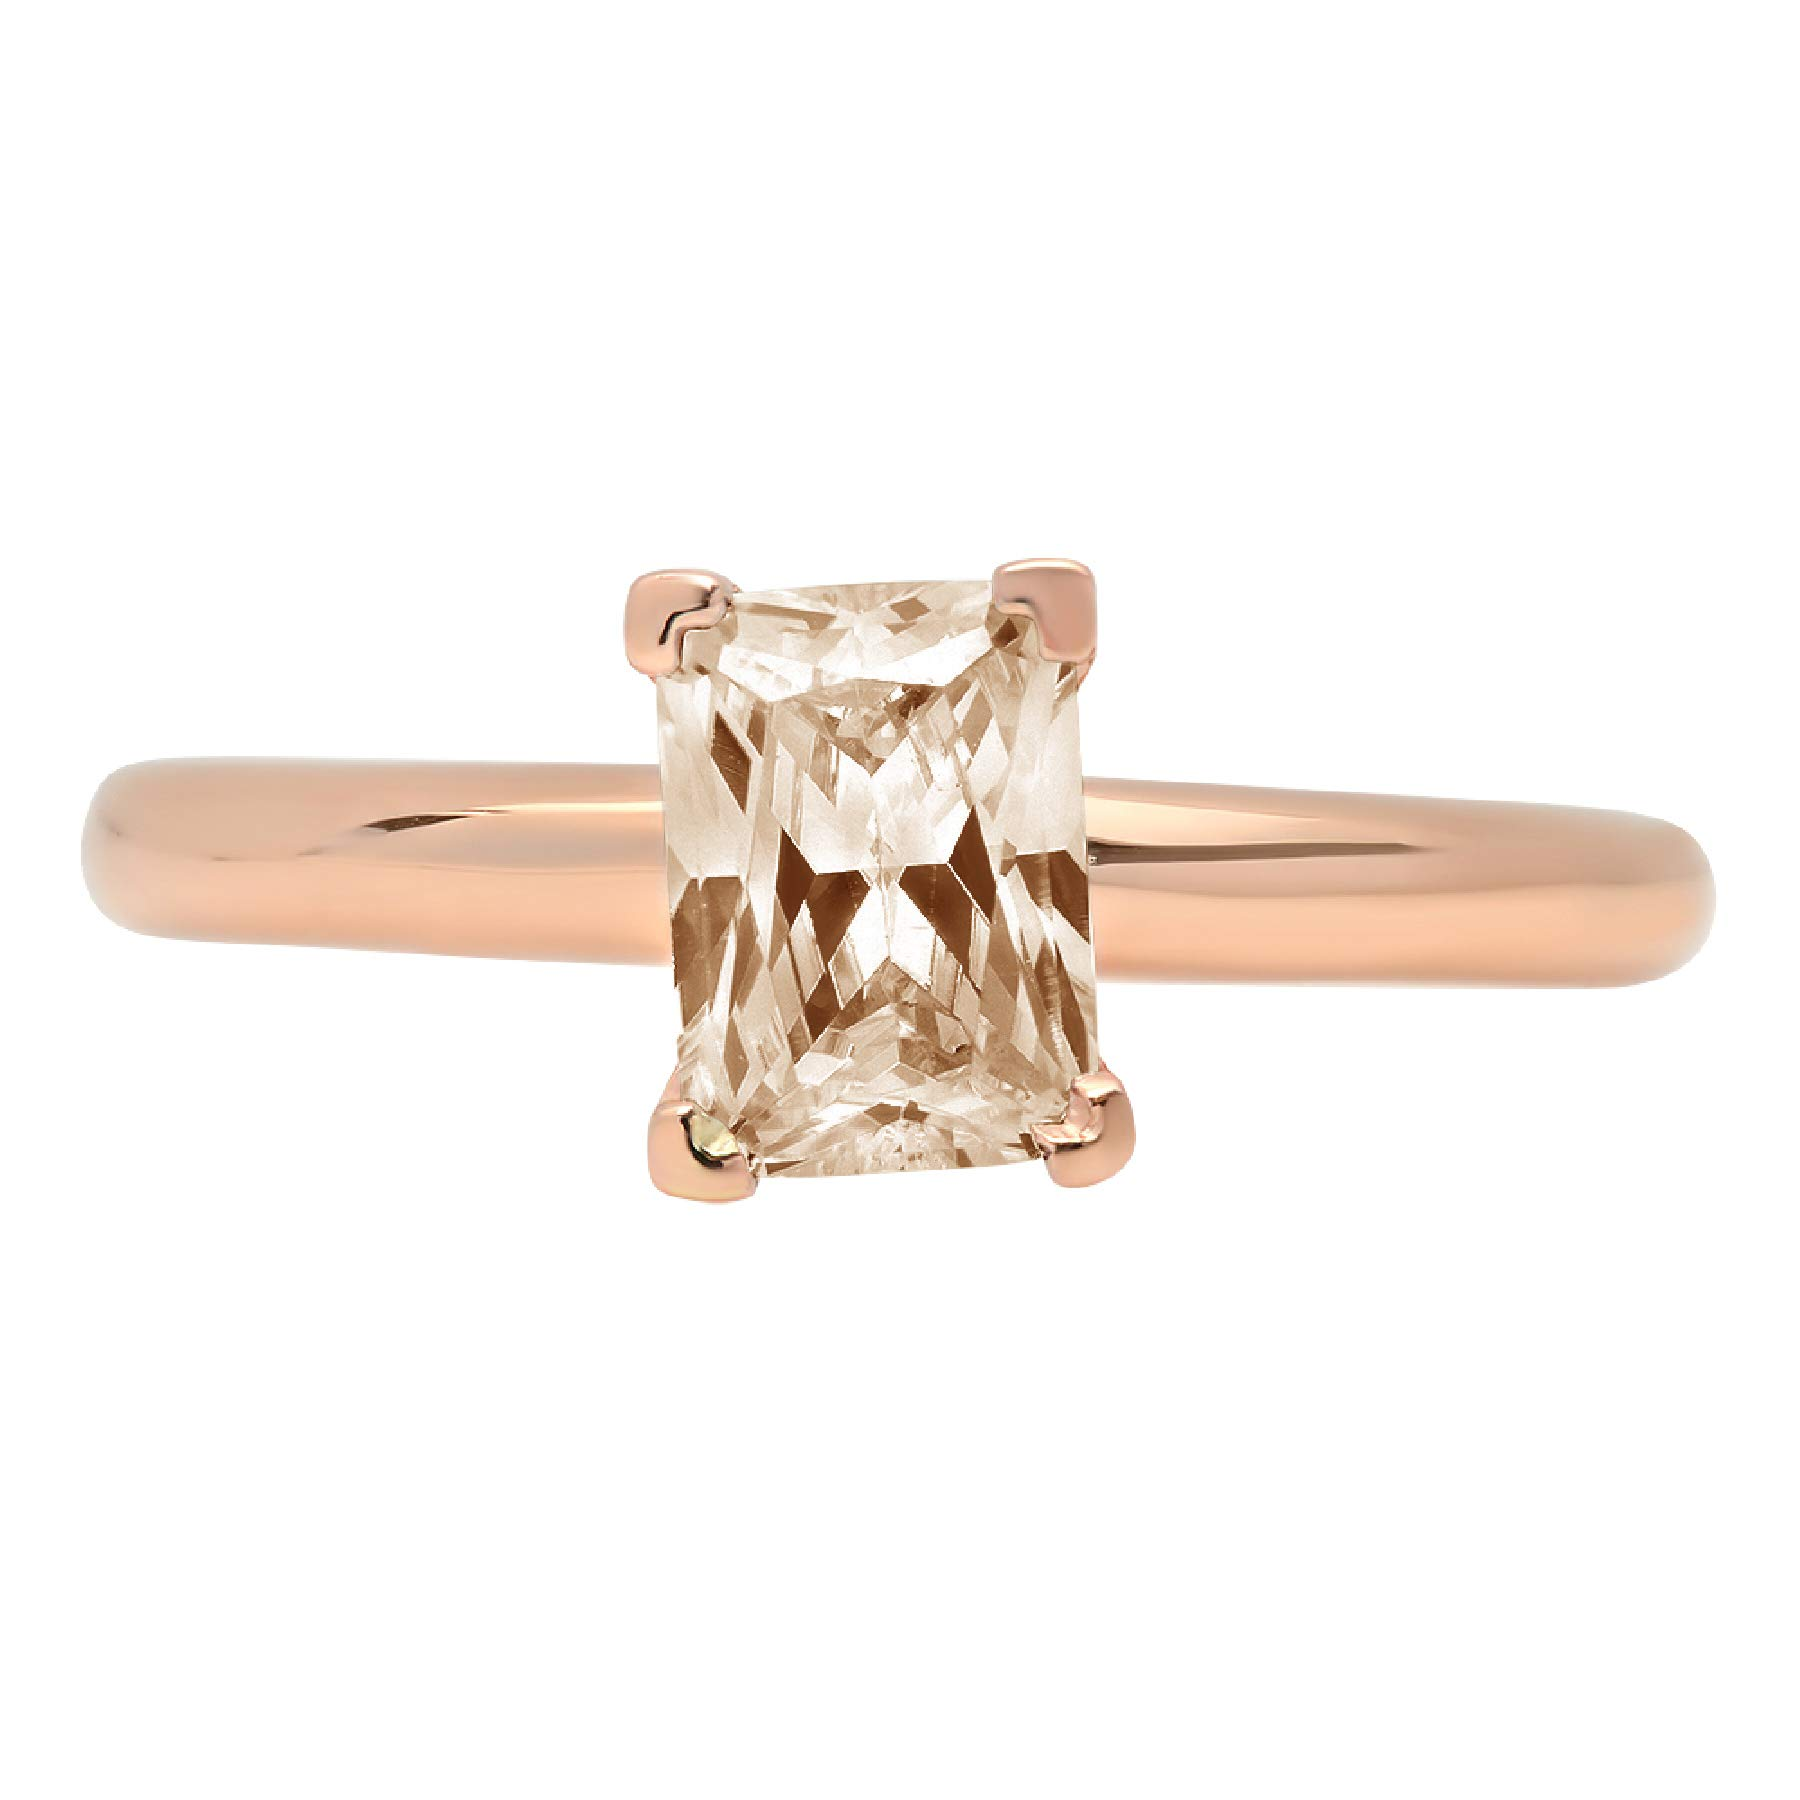 0.95ct Brilliant Emerald Cut Solitaire Brown Champagne Simulated Diamond CZ Ideal VVS1 D 4-Prong Classic Designer Statement Ring Solid Real 14k Rose Gold for Women